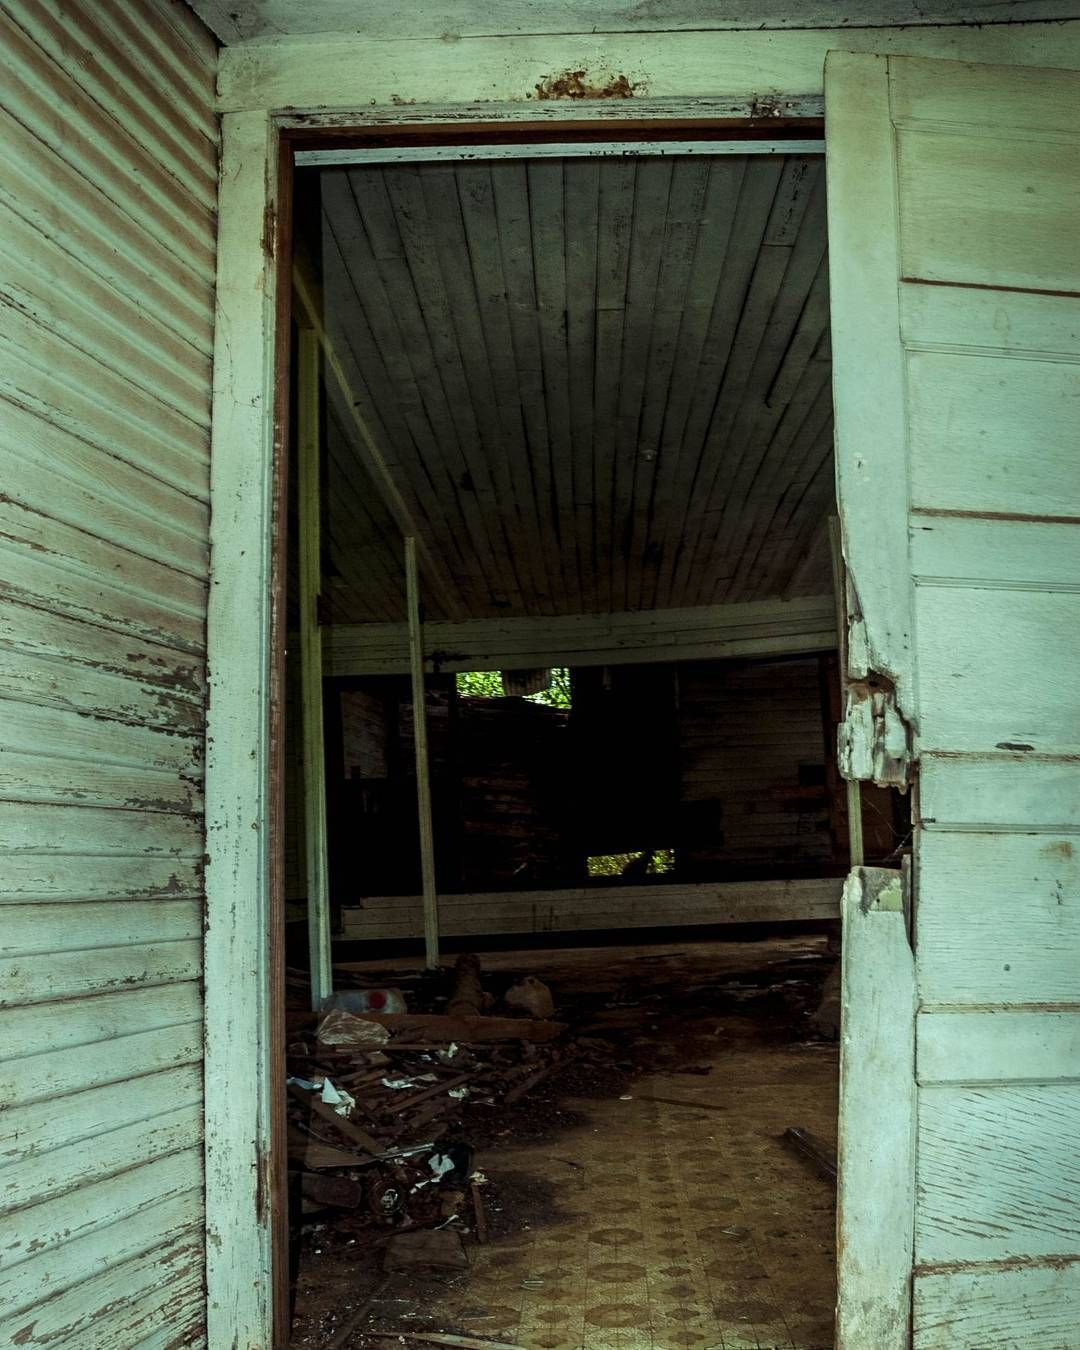 Abandoned schoolhouse in the East Texas ghost town Waneta